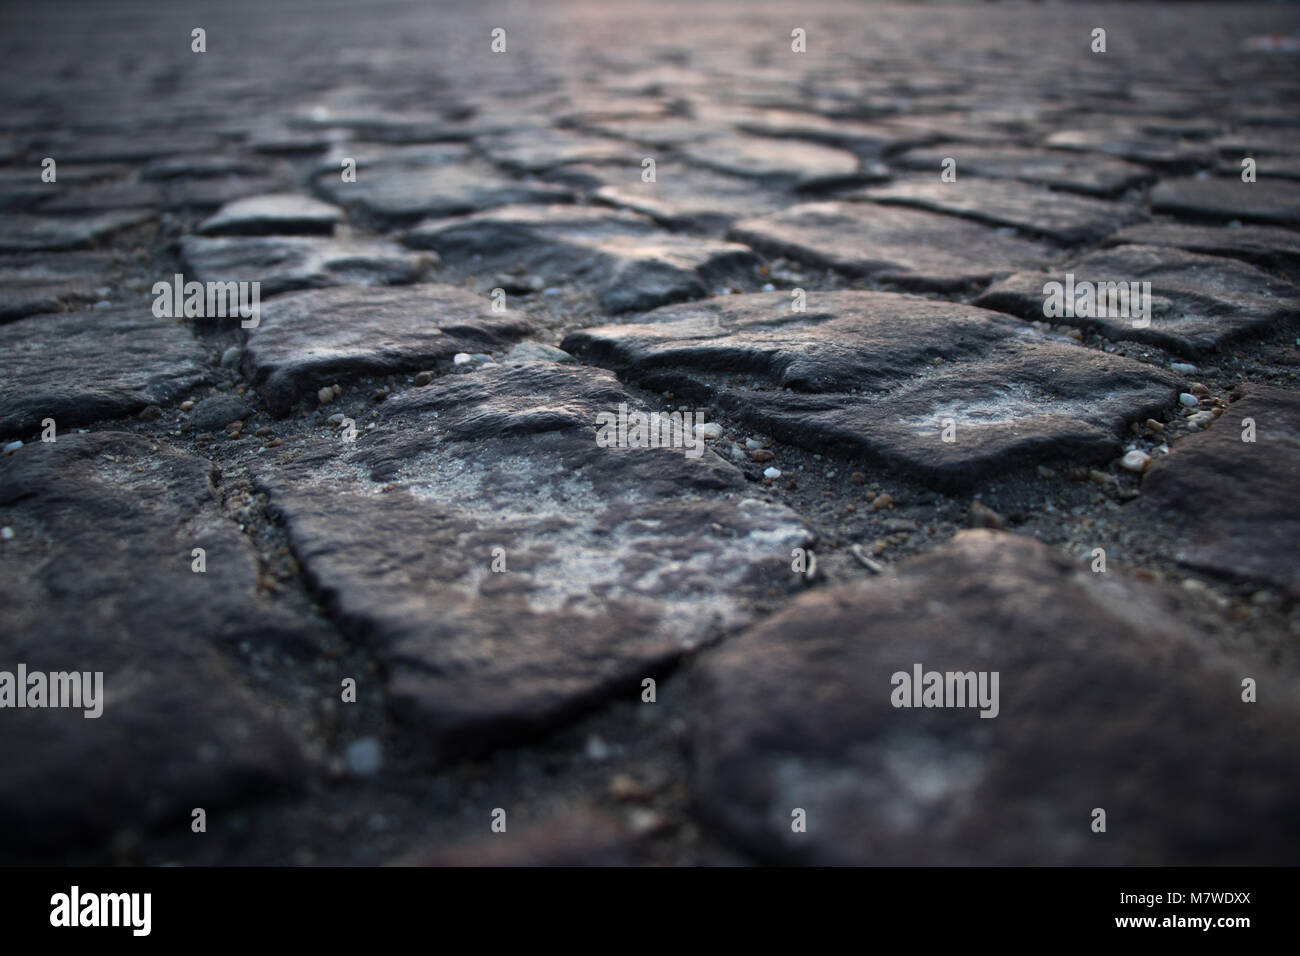 Cubic stone road close up scene - Stock Image